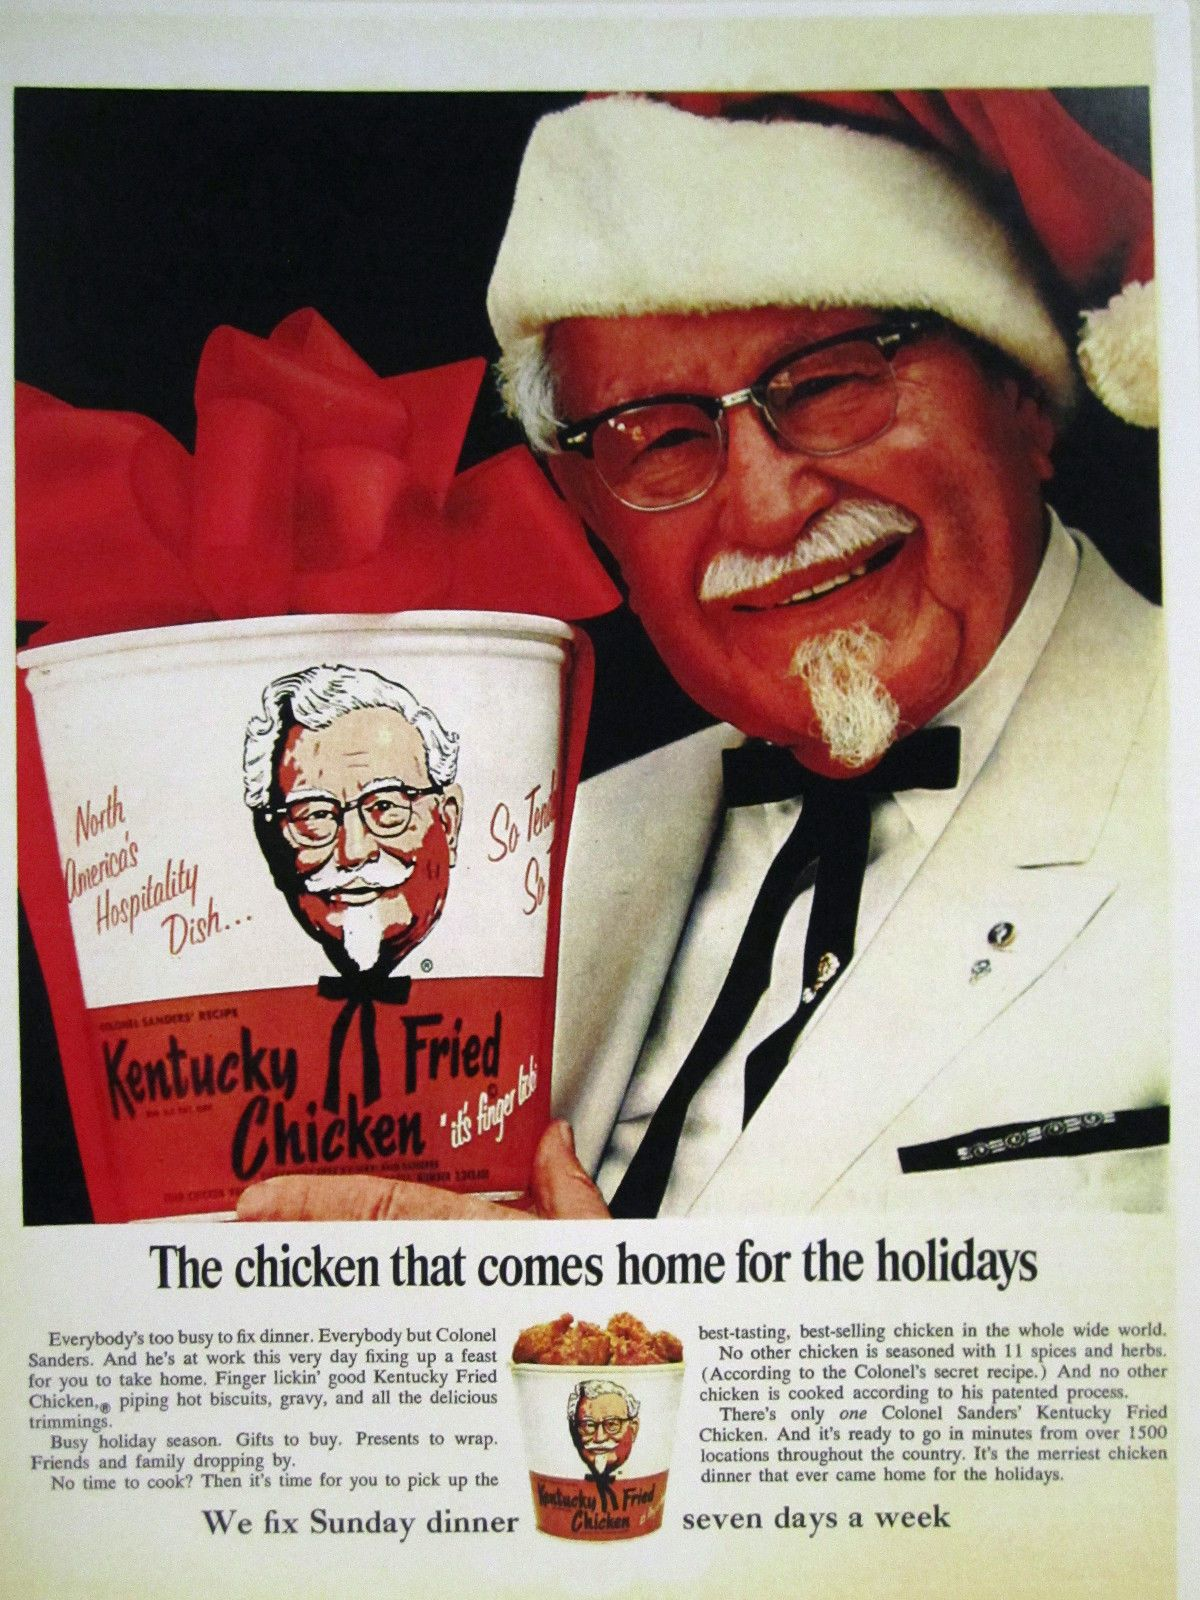 Who Is The Christmas Colonel Sanders 2020 Vintage 1960's Advertising Store Sign Ad Christmas KFC COLONEL